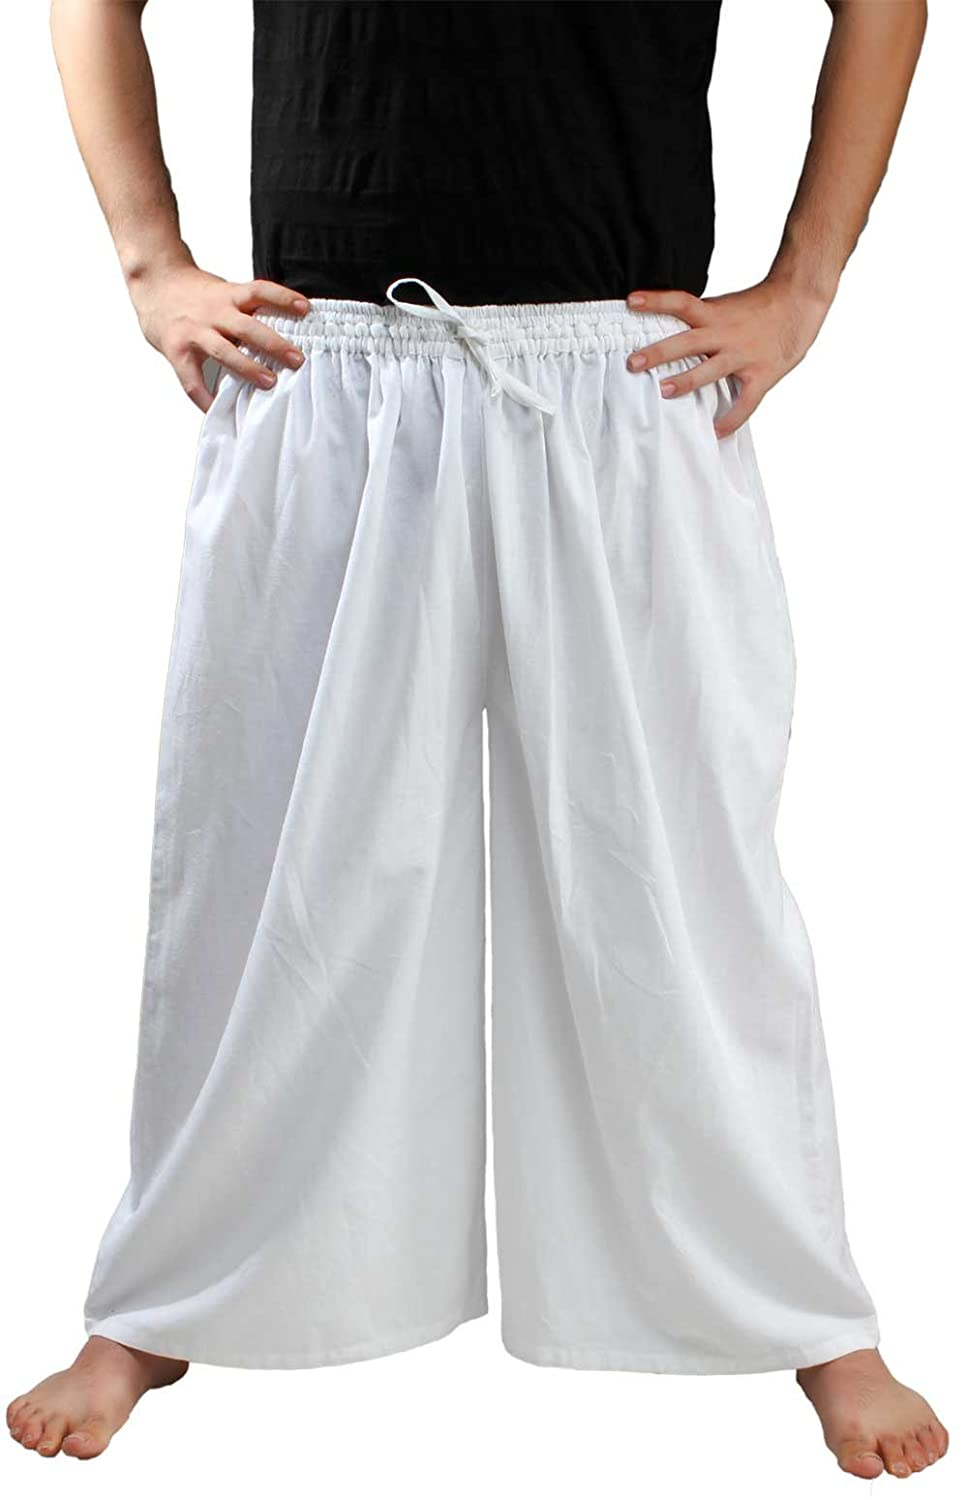 Deluxe Adult Costumes - Men's white wide leg draw string pirate seamen slop pants by ThePirateDressing